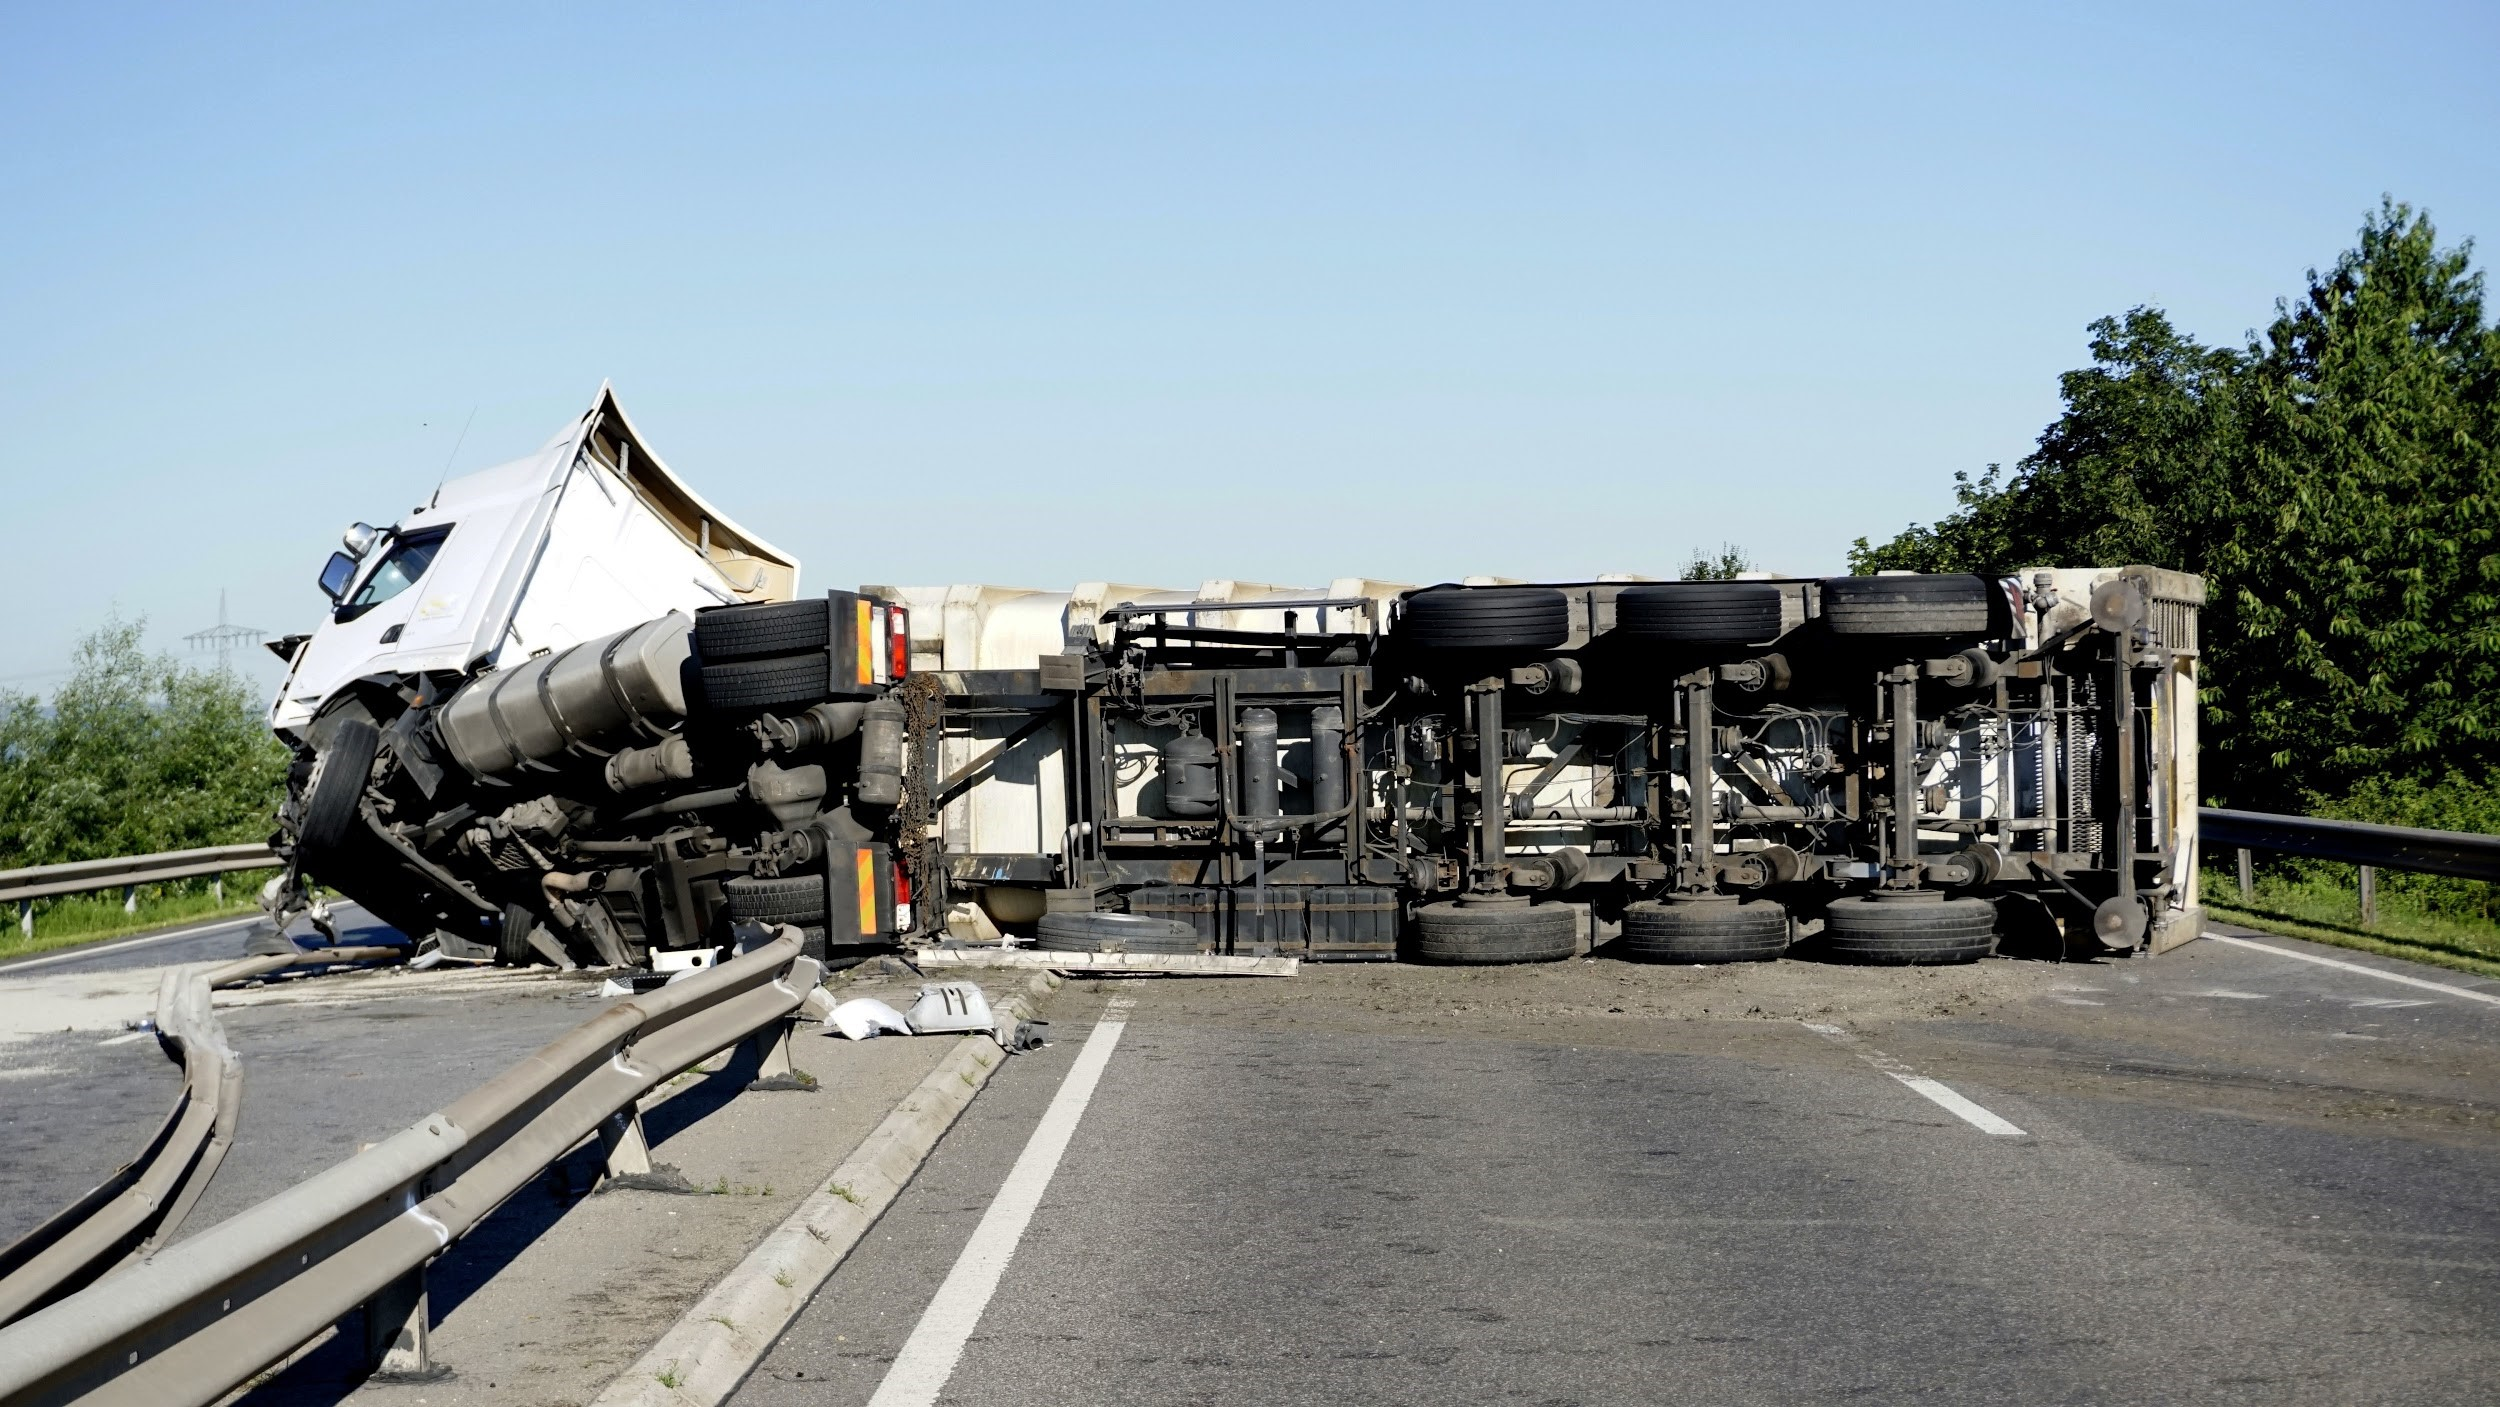 semi truck accident on highway